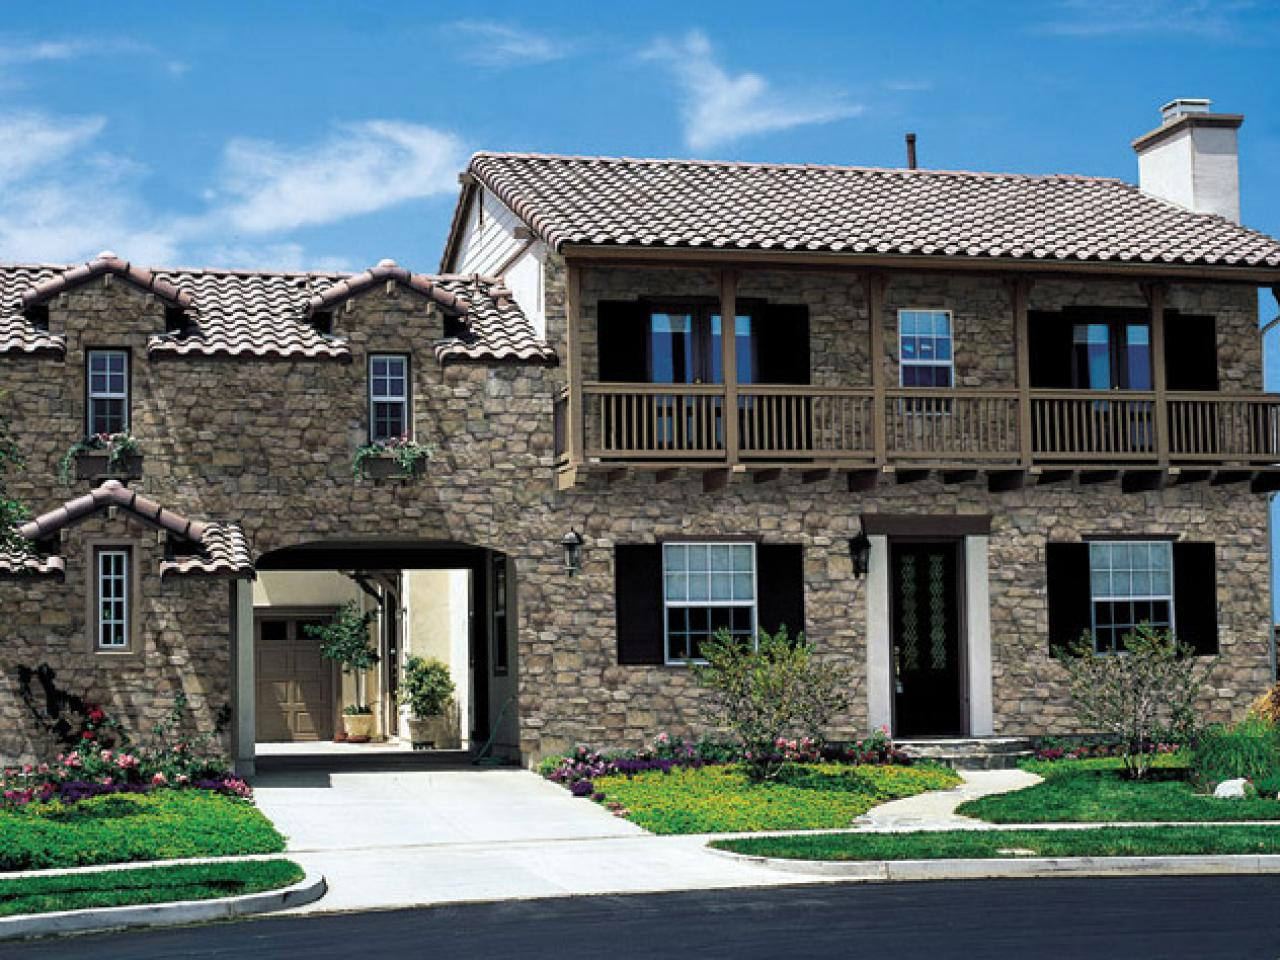 Ci coronado stone exterior buying guide spanish old world s4x3